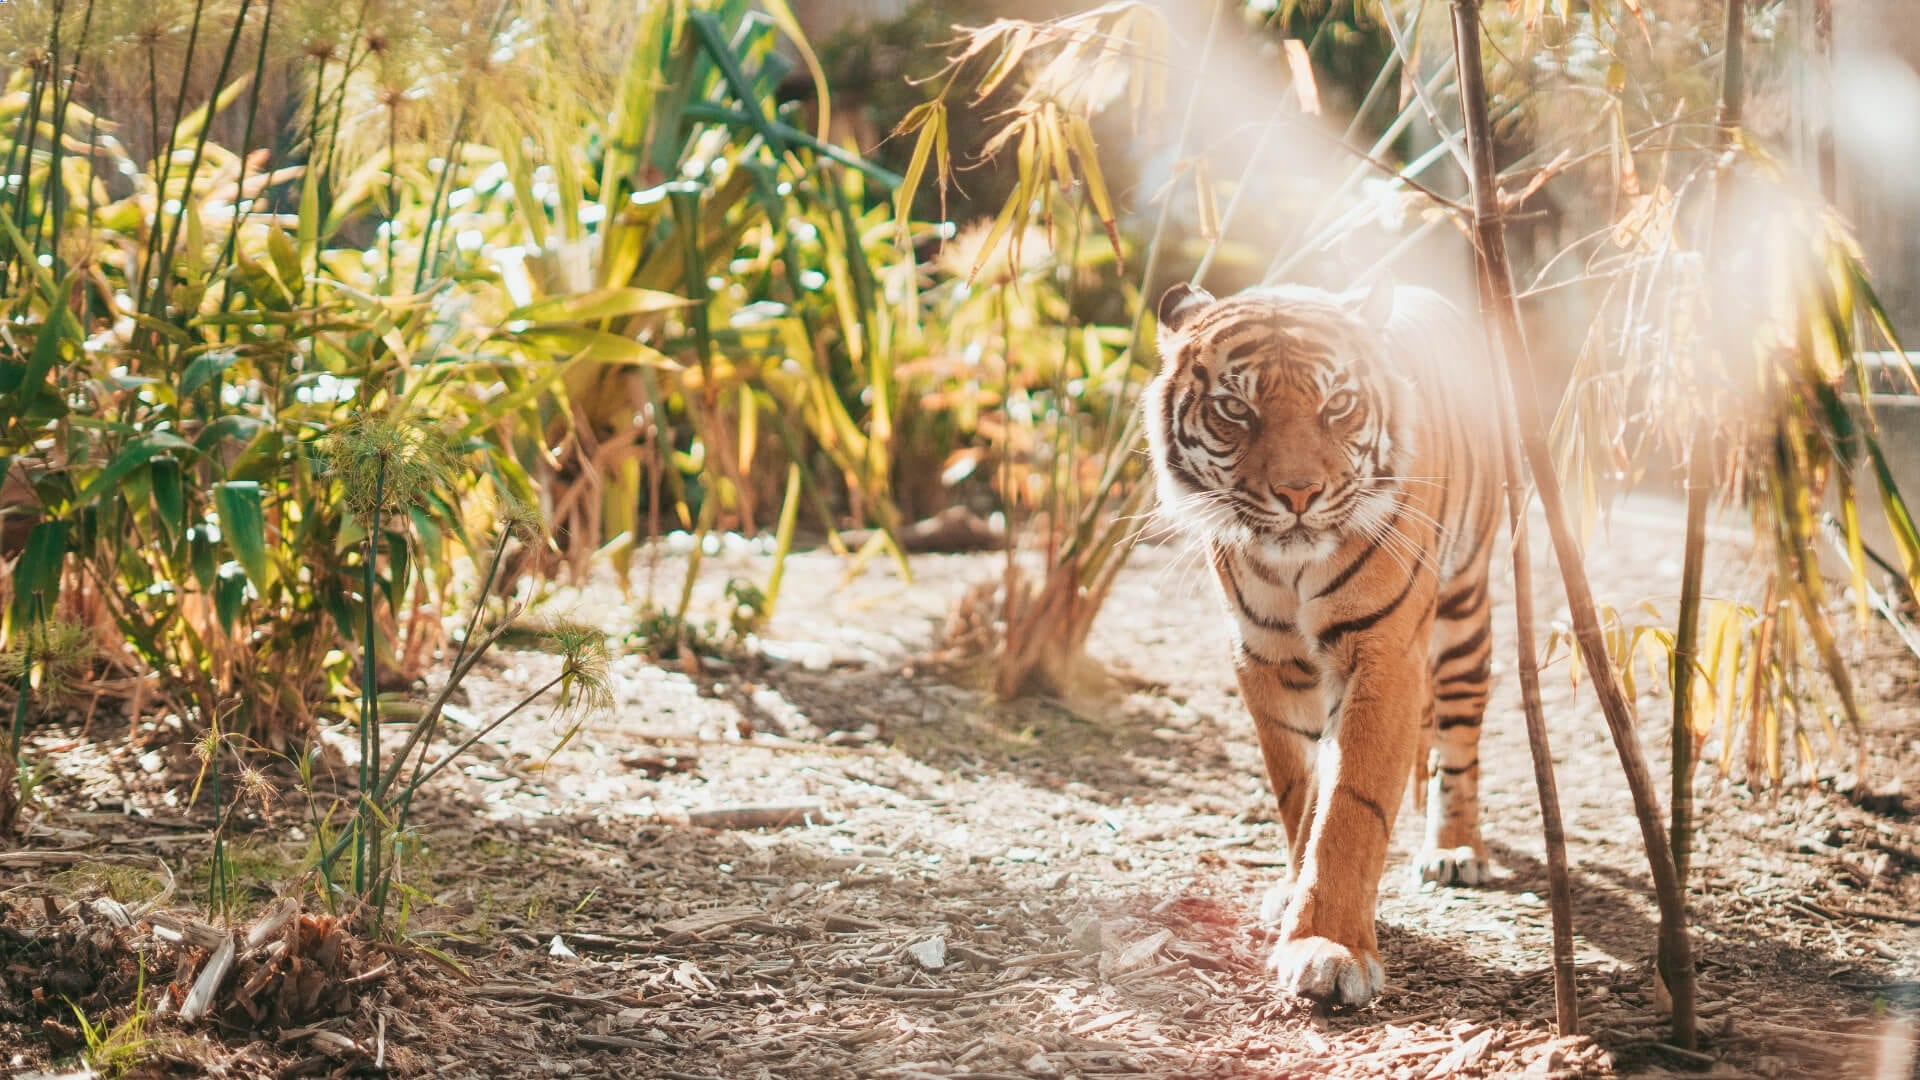 A tiger is looking angry and walking in a jungle in Asia.